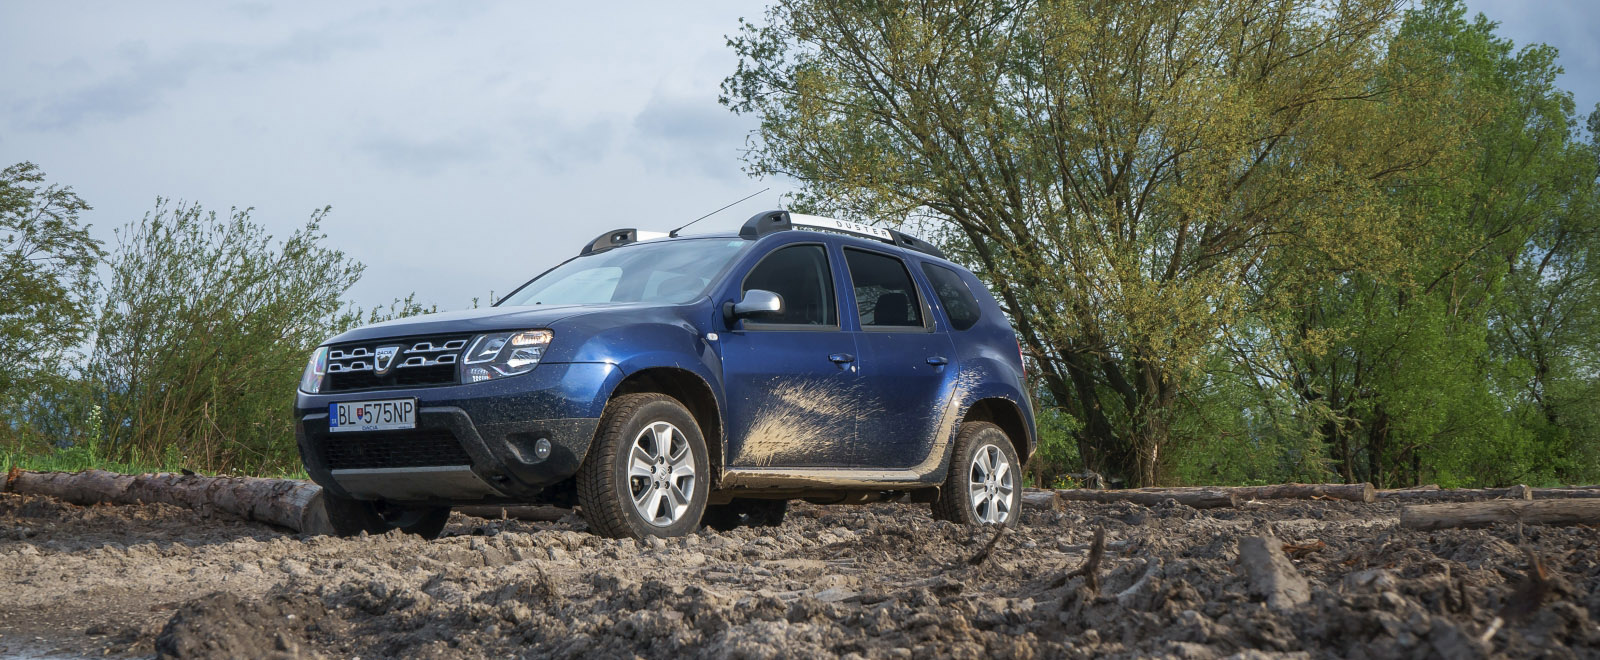 test dacia duster 1 5 dci 4 4 noemova archa. Black Bedroom Furniture Sets. Home Design Ideas